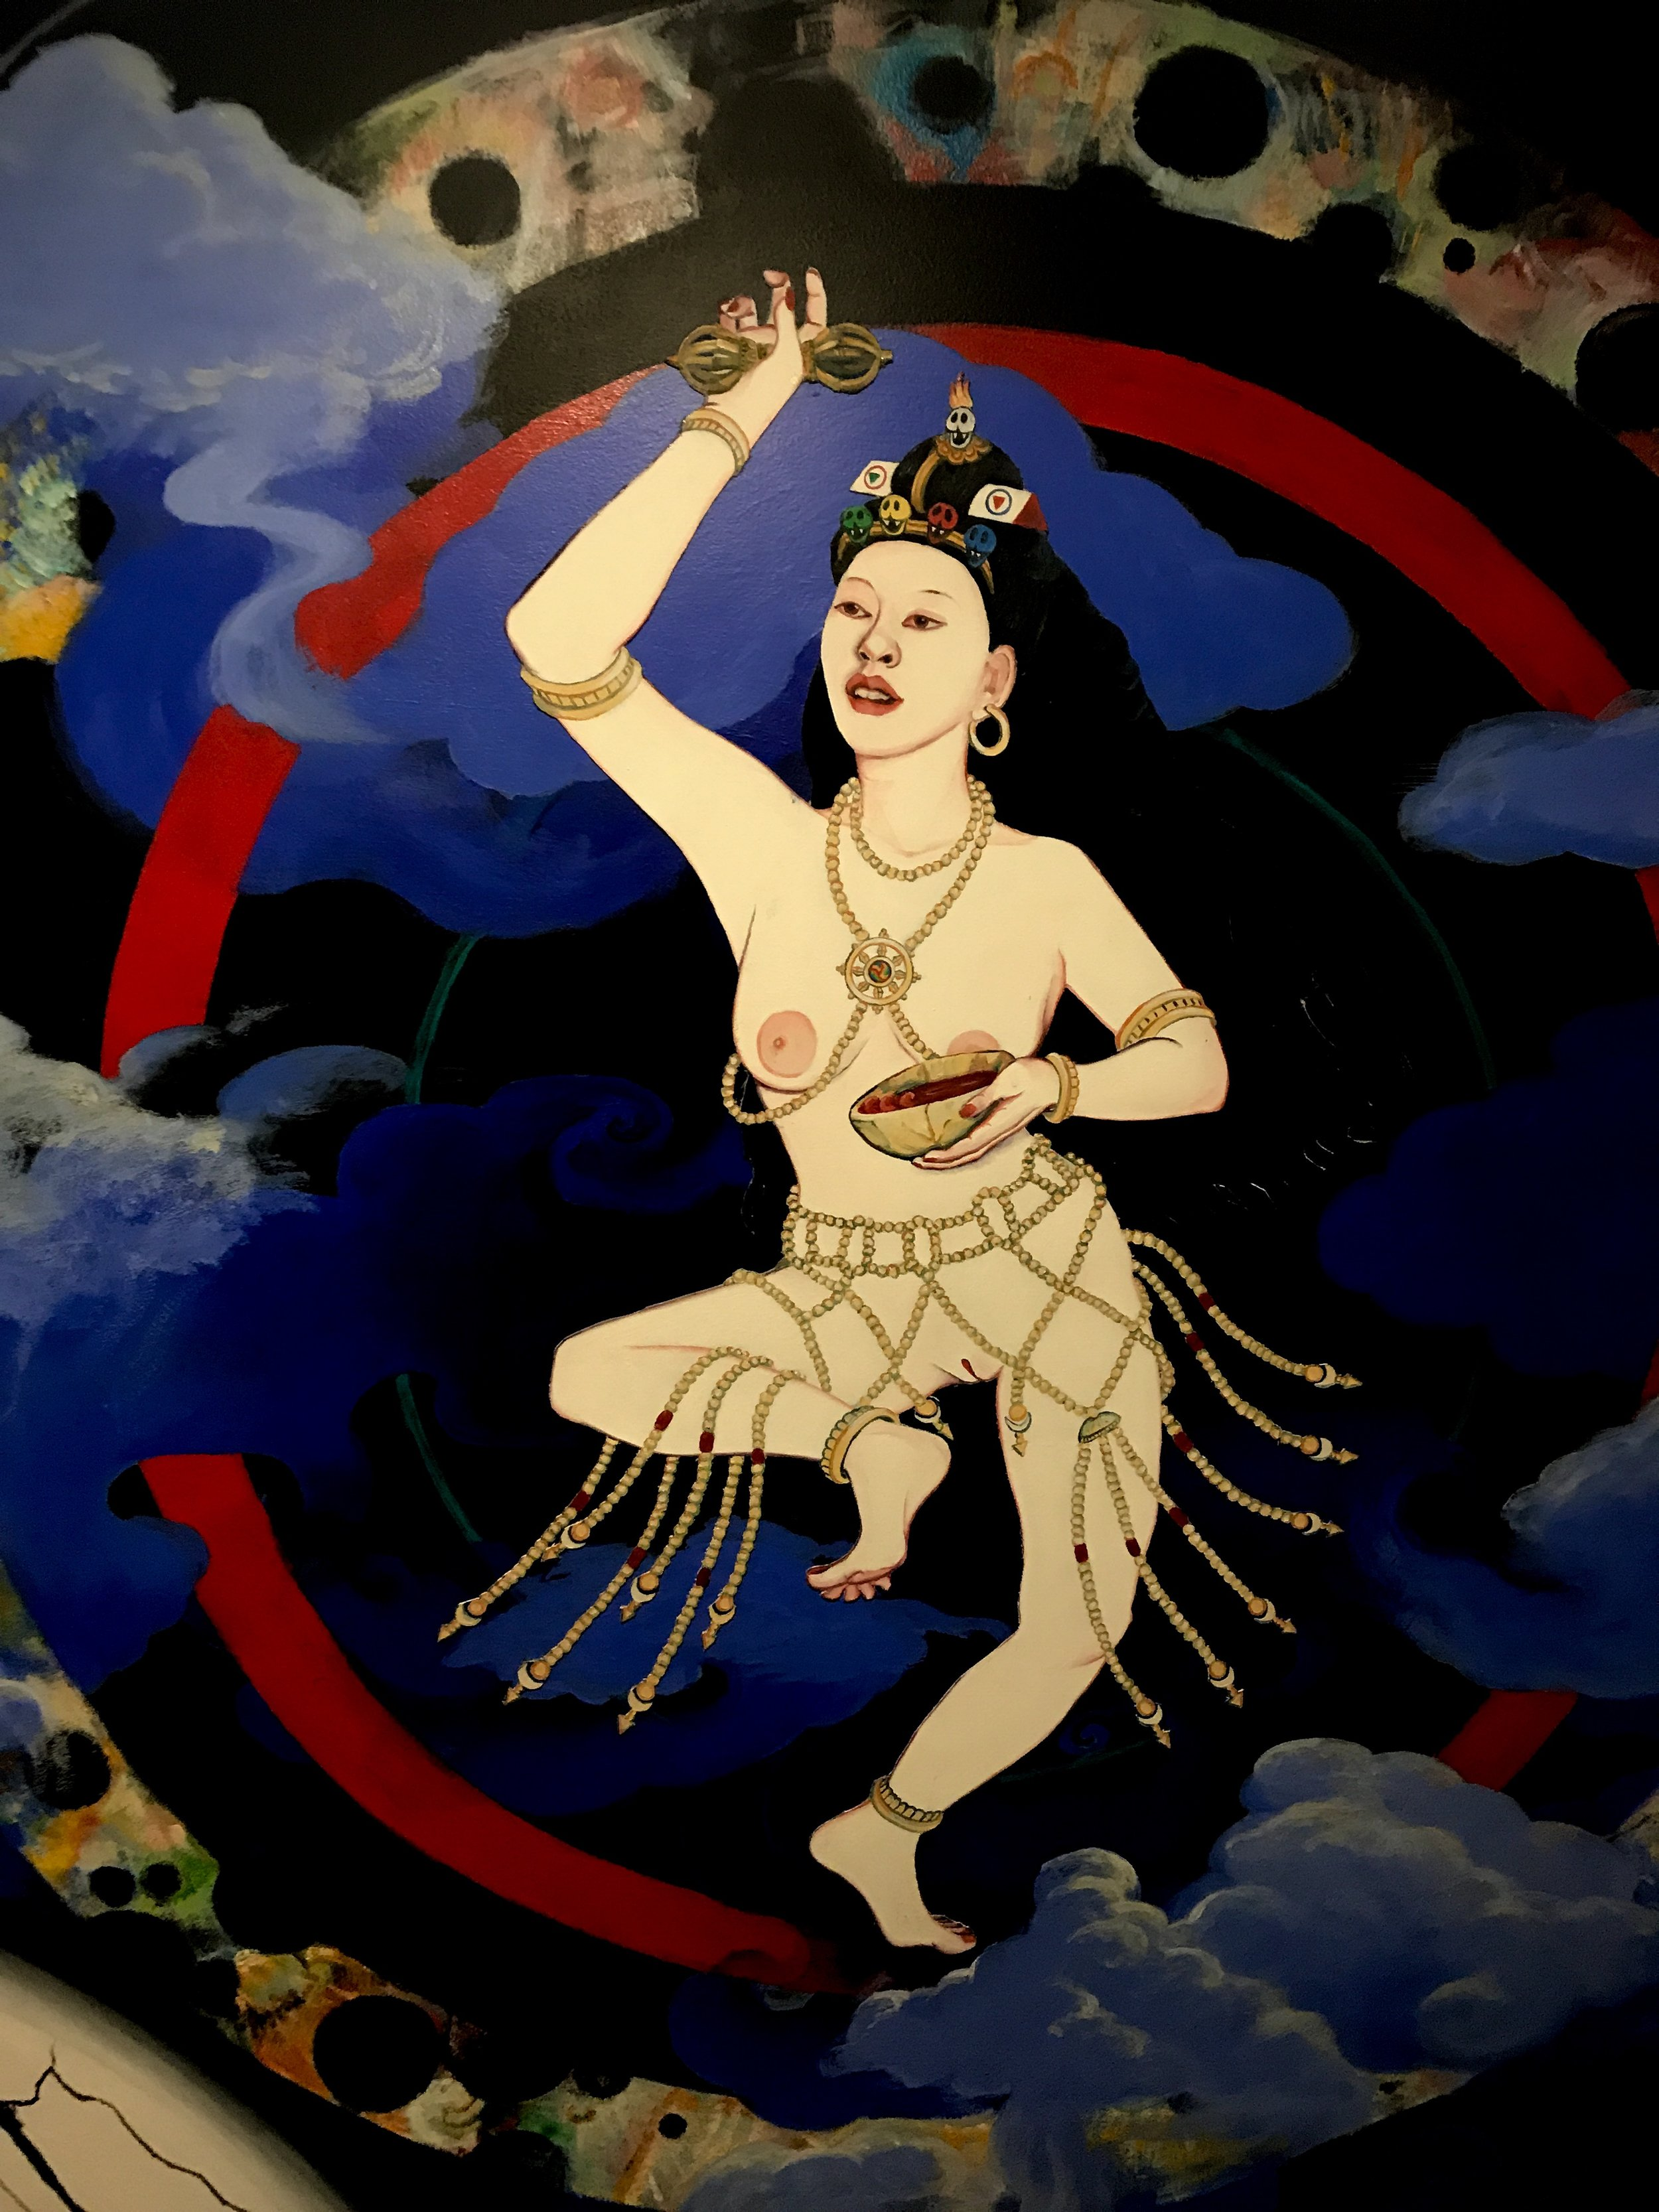 The great female mystic, yogini, and Buddha Yeshe Tsogyel who helped to establish the systems of Tantra and Dzogchen in Tibet, India, and Nepal.